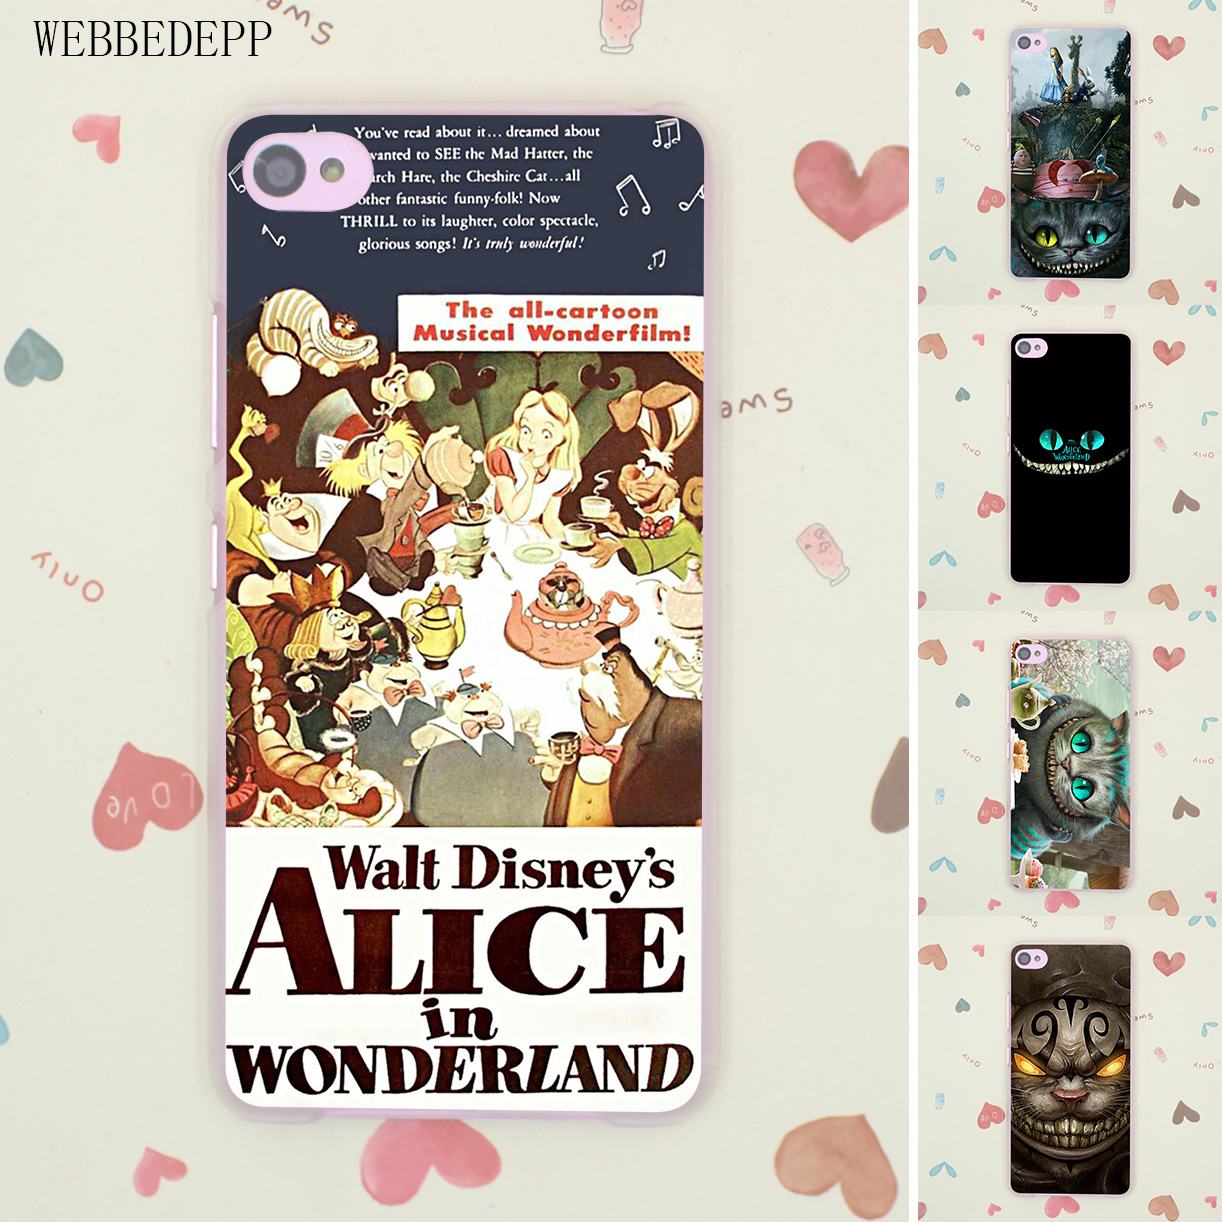 Design poster k3 - Alice In Wonderland Retro Movie Poster Hard Case For Lenovo A2010 A5000 K3 K4 K5 K6 Note S60 S850 S90 X3 Lite Vibe P1 Z2